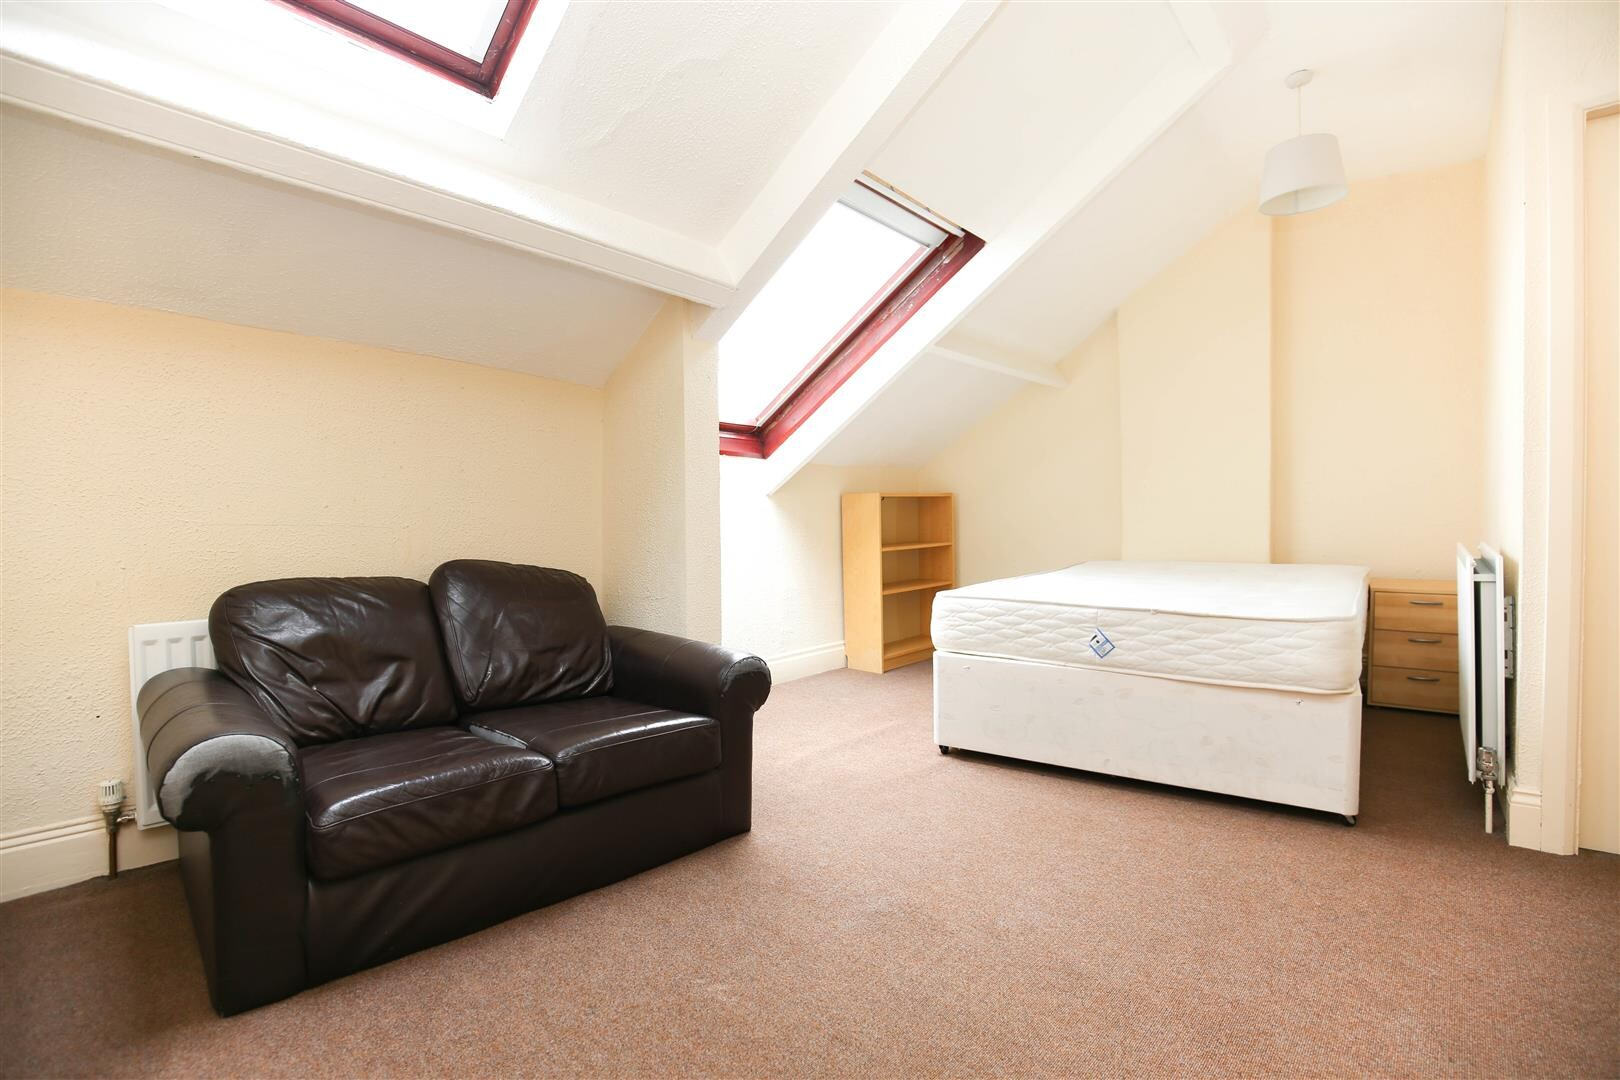 4 bedroom student house in Heaton, Newcastle